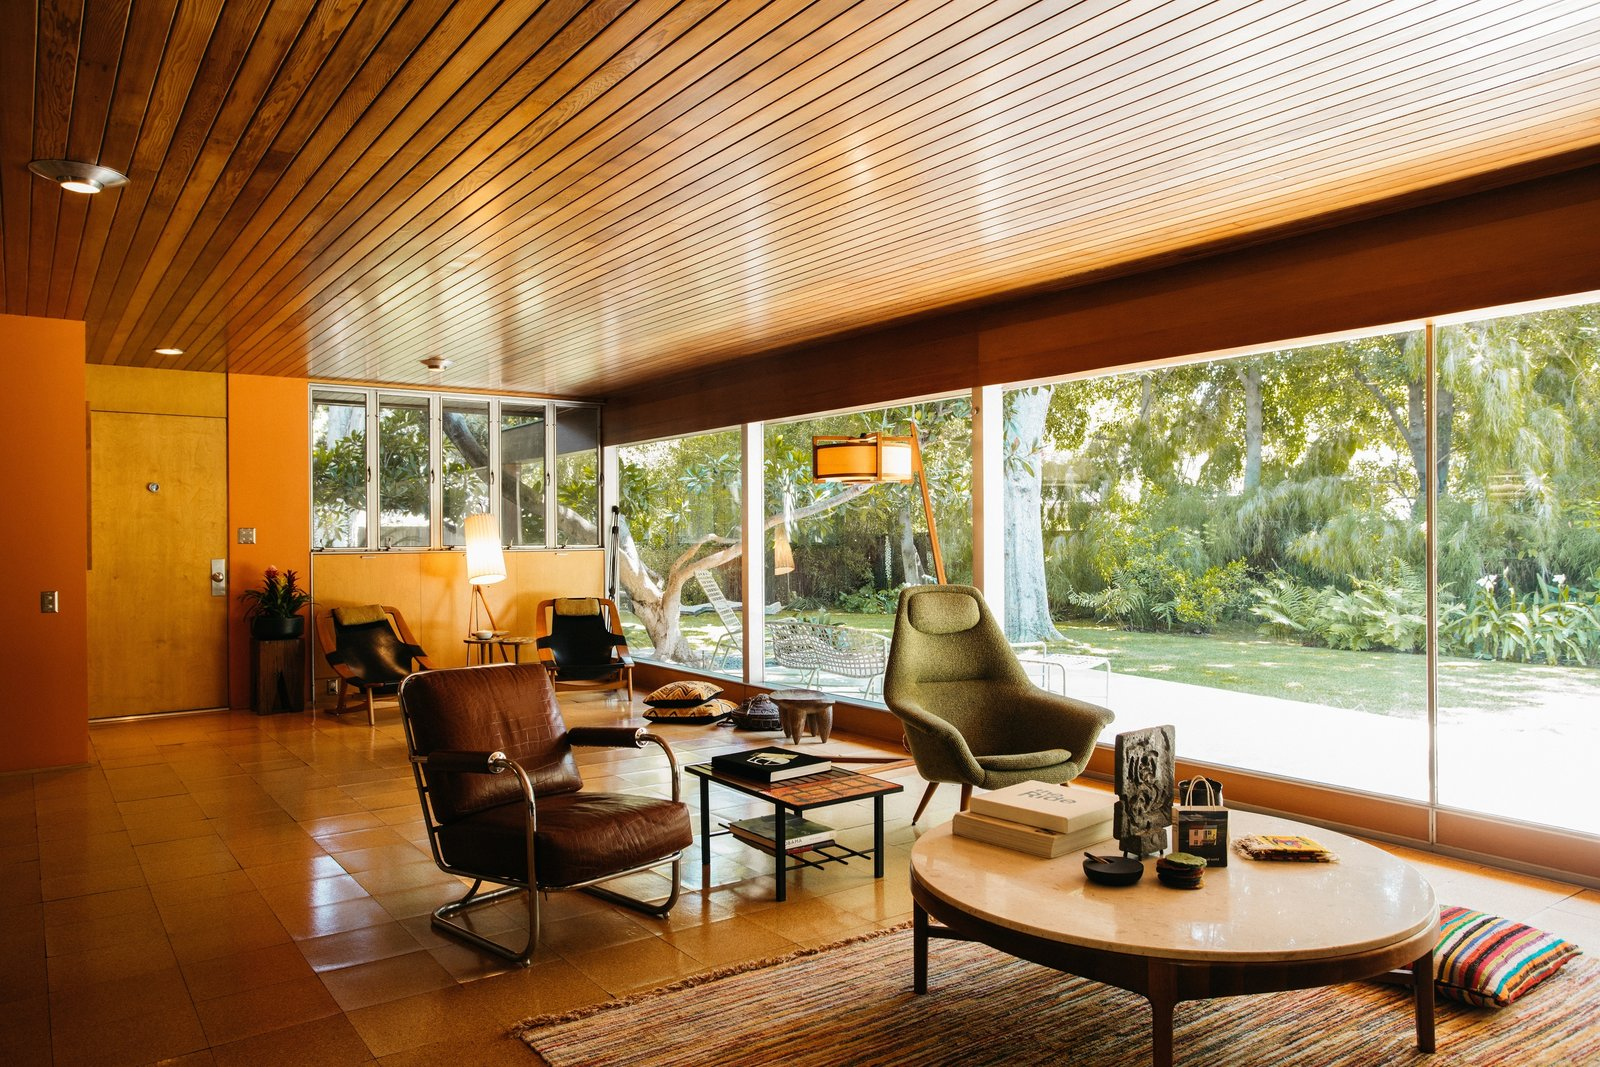 Richard Neutra Wilkins House Case Study House #13  living room tongue-and-groove